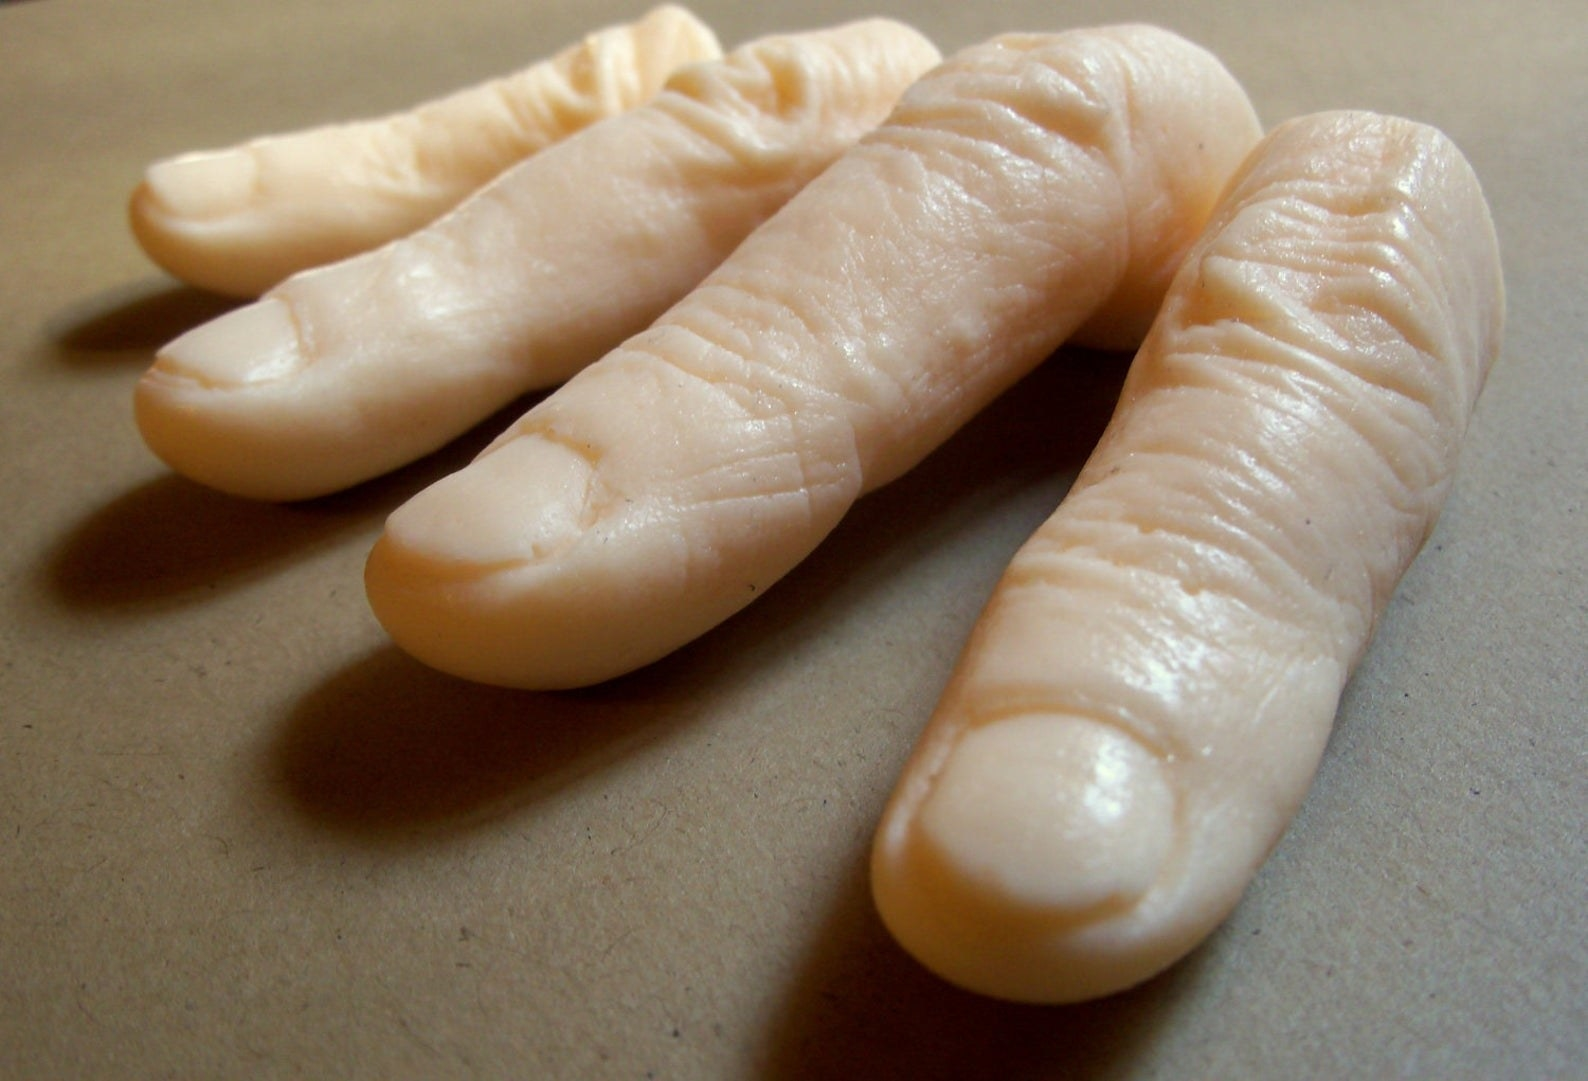 four finger soaps